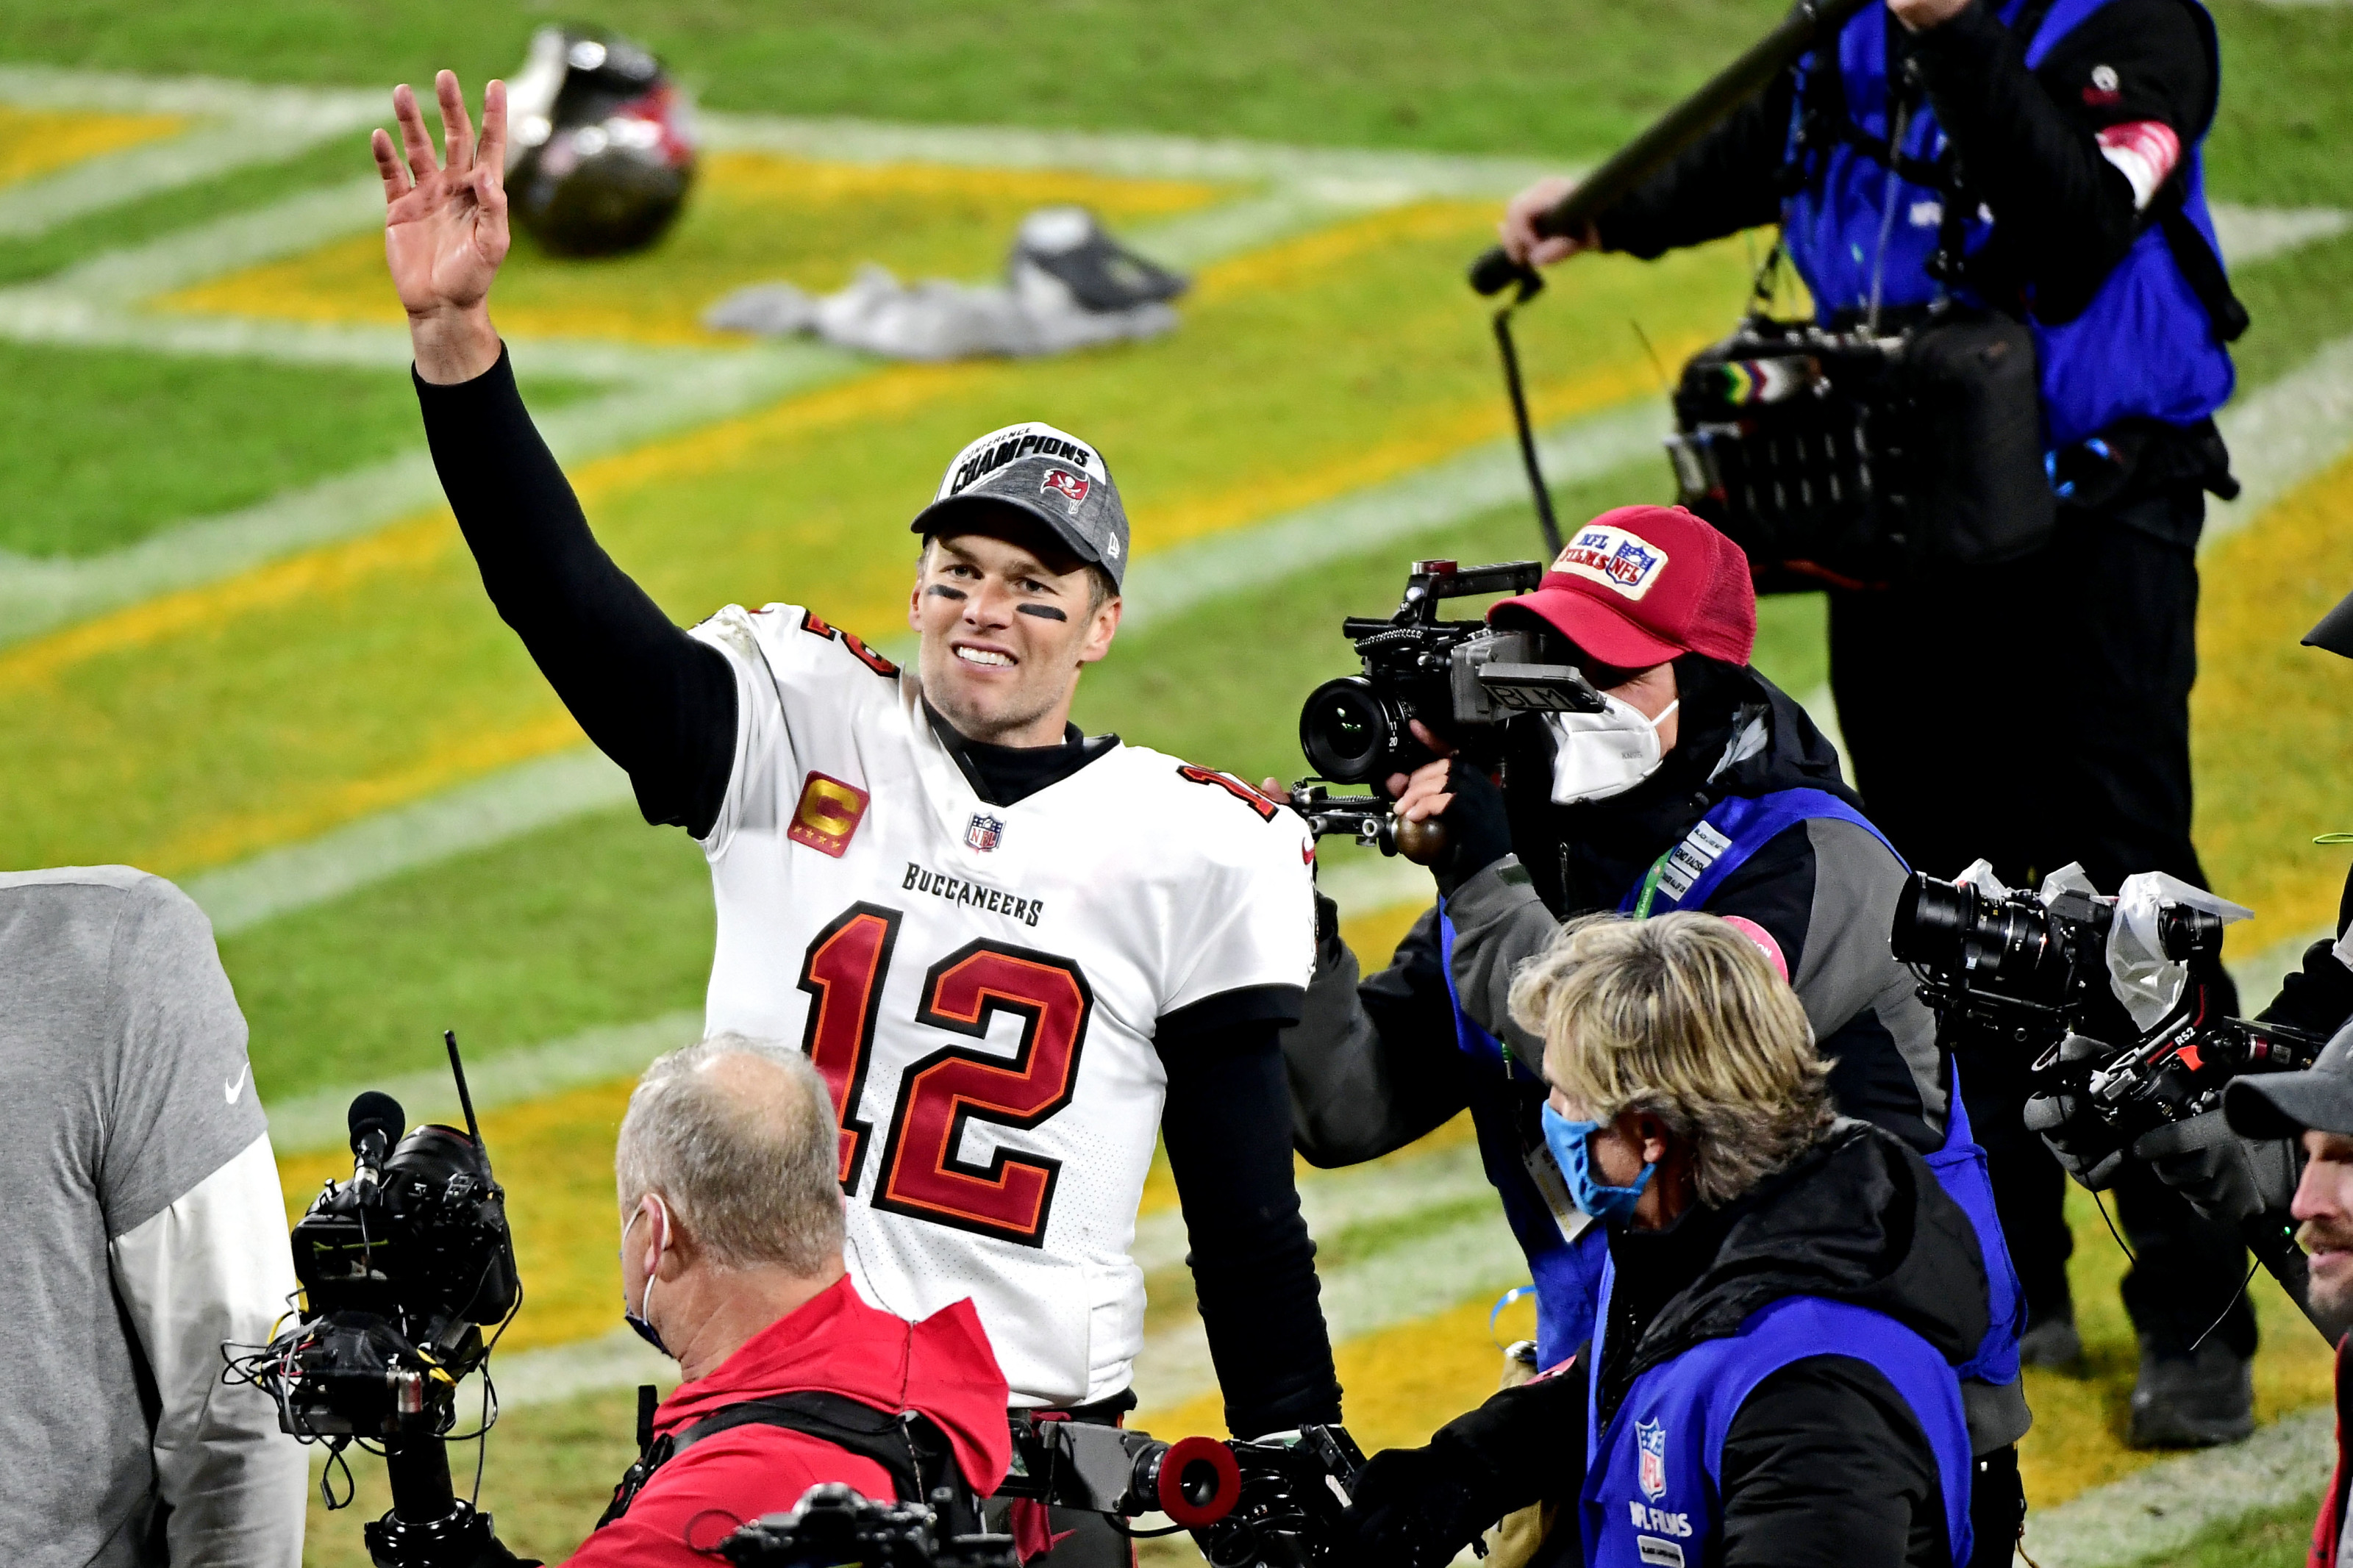 SF 49ers wouldn't have made Super Bowl 55 with Tom Brady